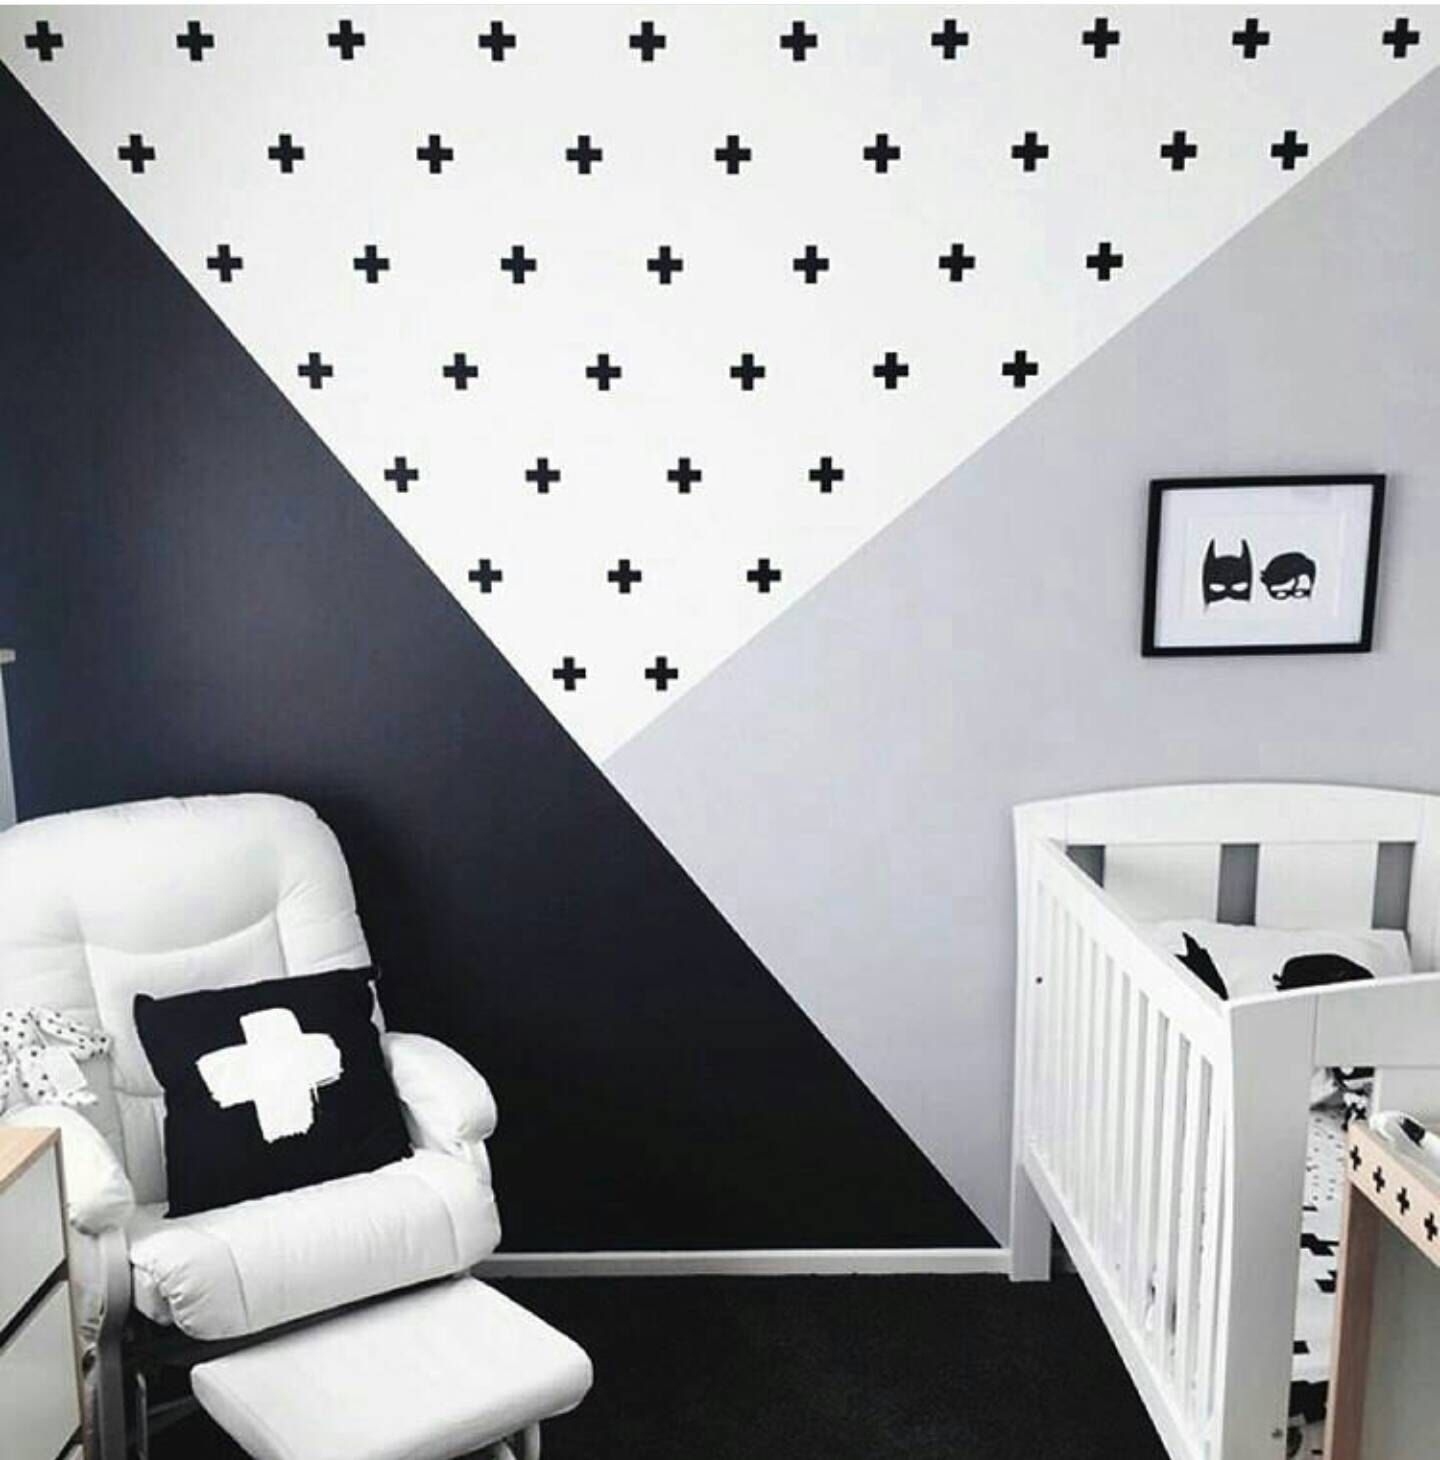 Swiss Cross Wall Decals, Plus Sign Wall Stickers, Geometric Accent With Regard To Newest Geometric Shapes Wall Accents (View 13 of 15)